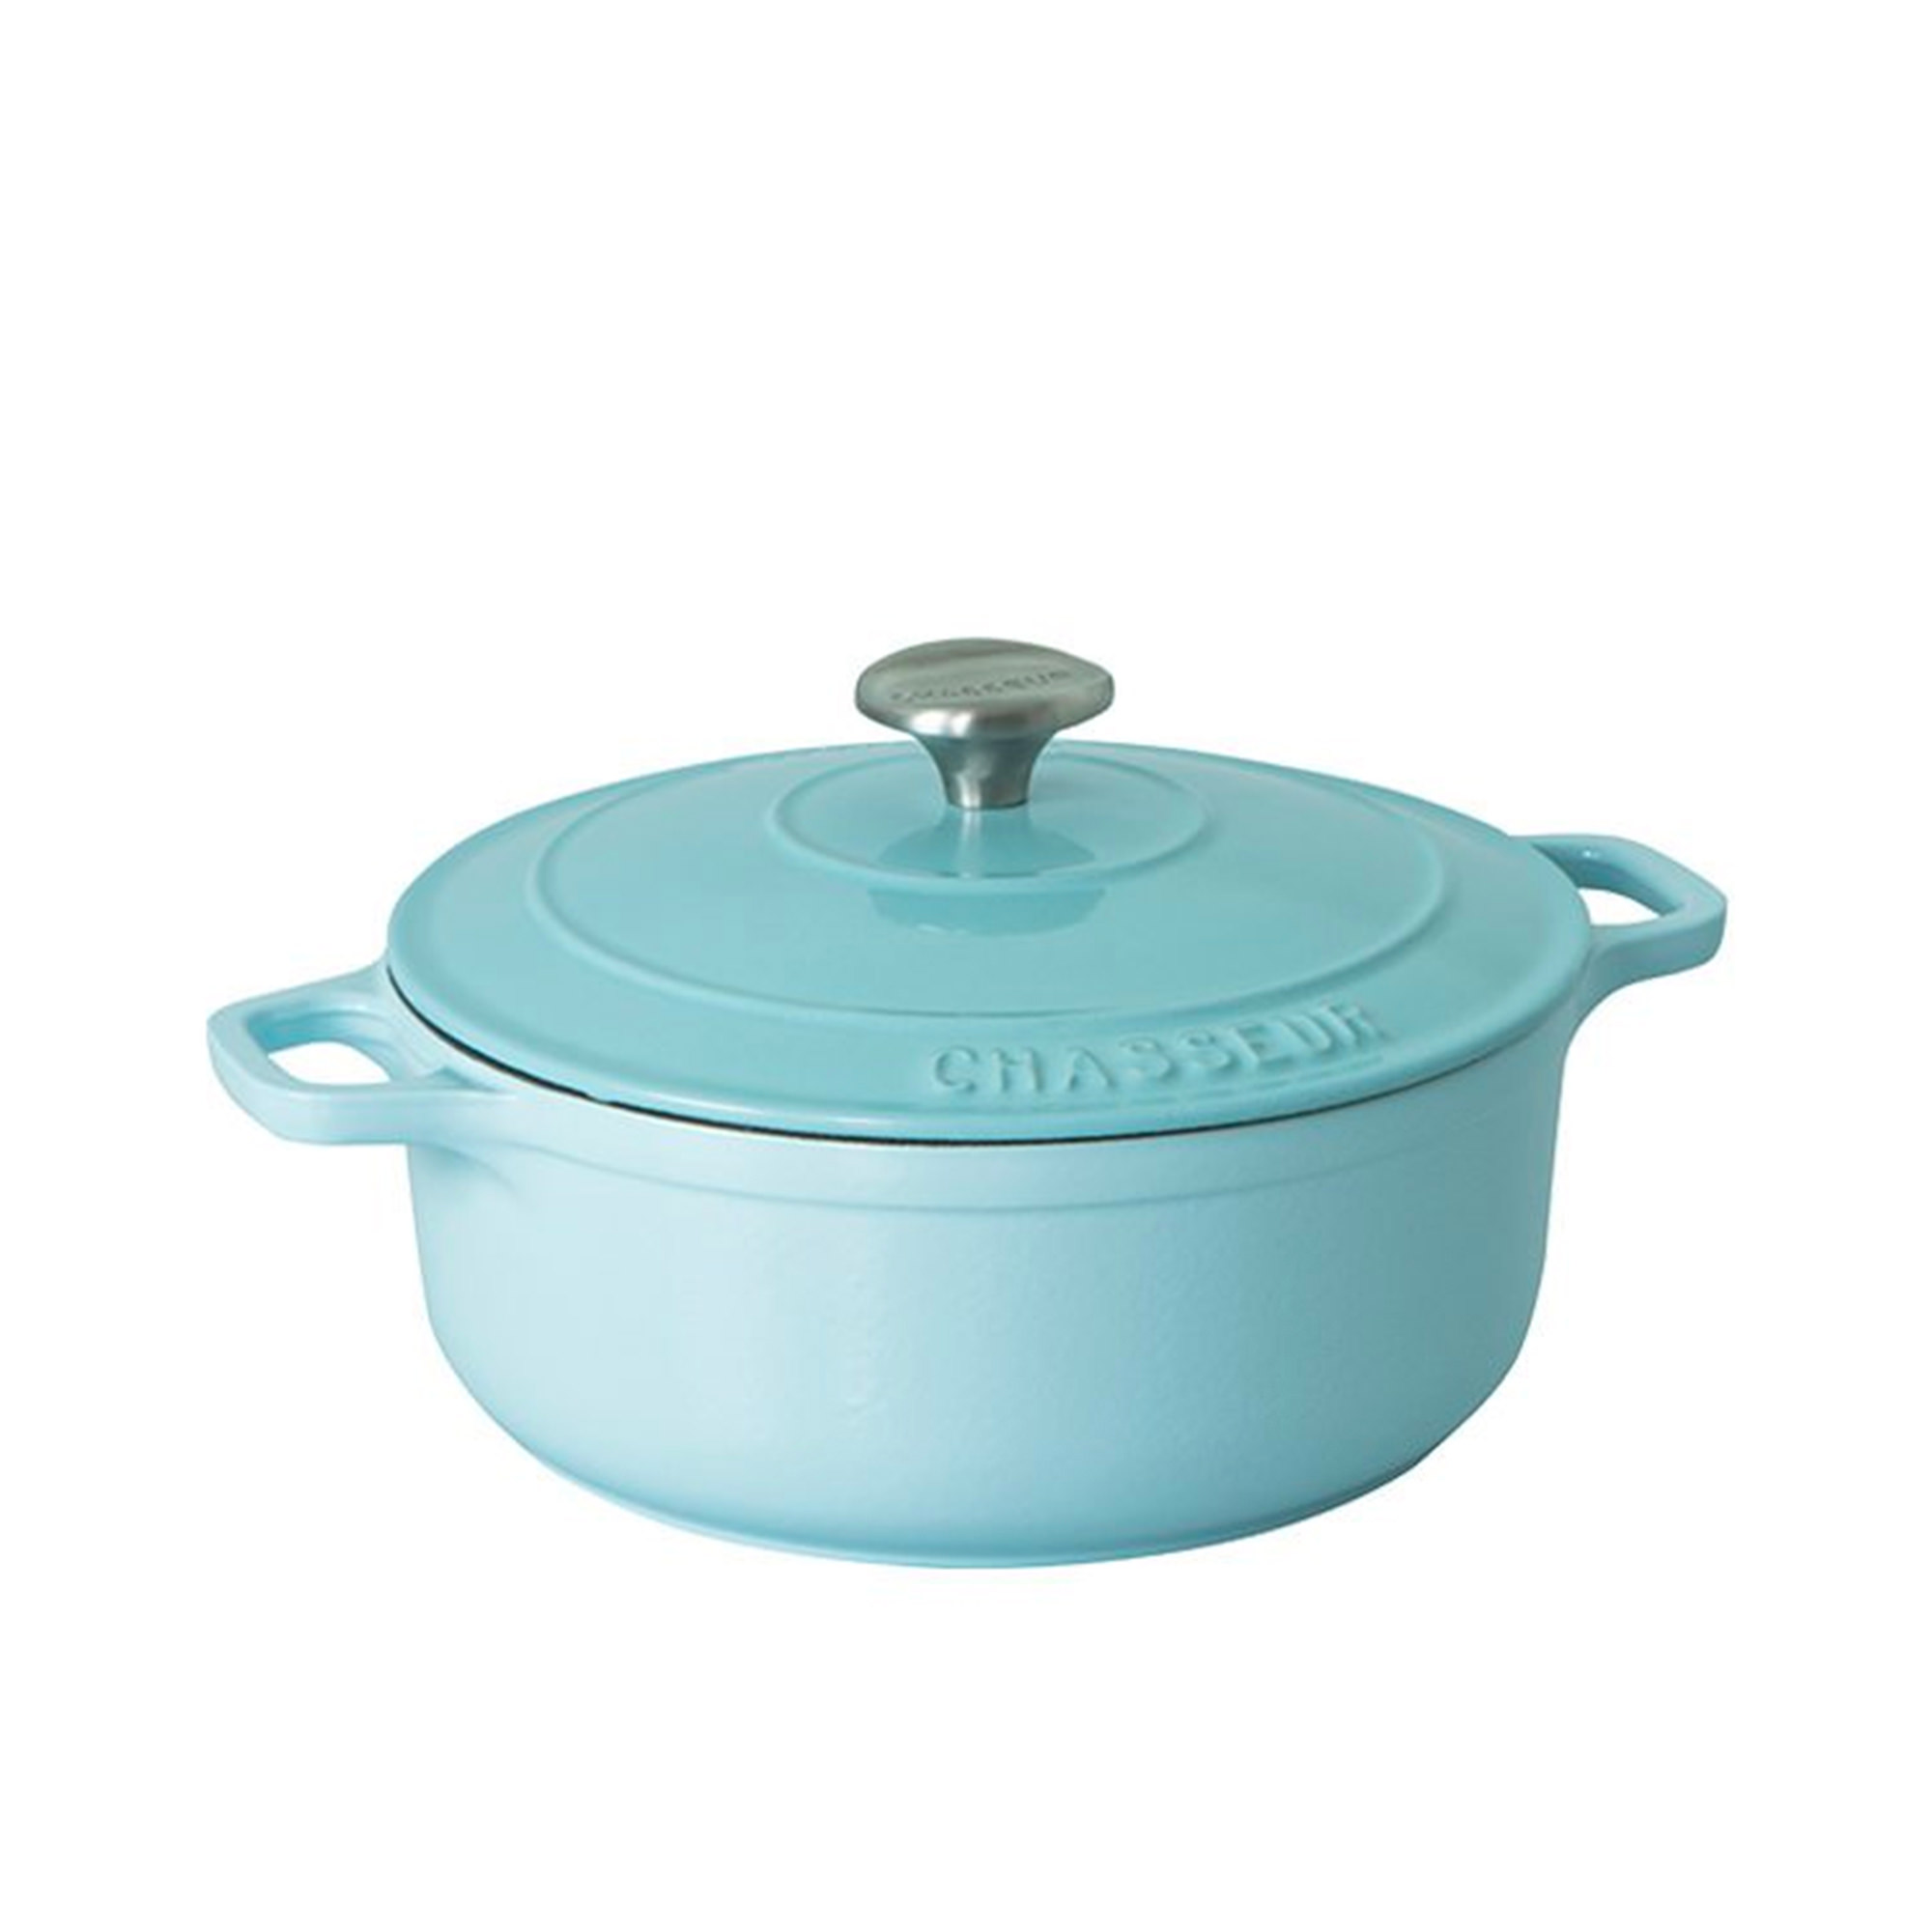 Chasseur Round French Oven 24cm - 4L Duck Egg Blue